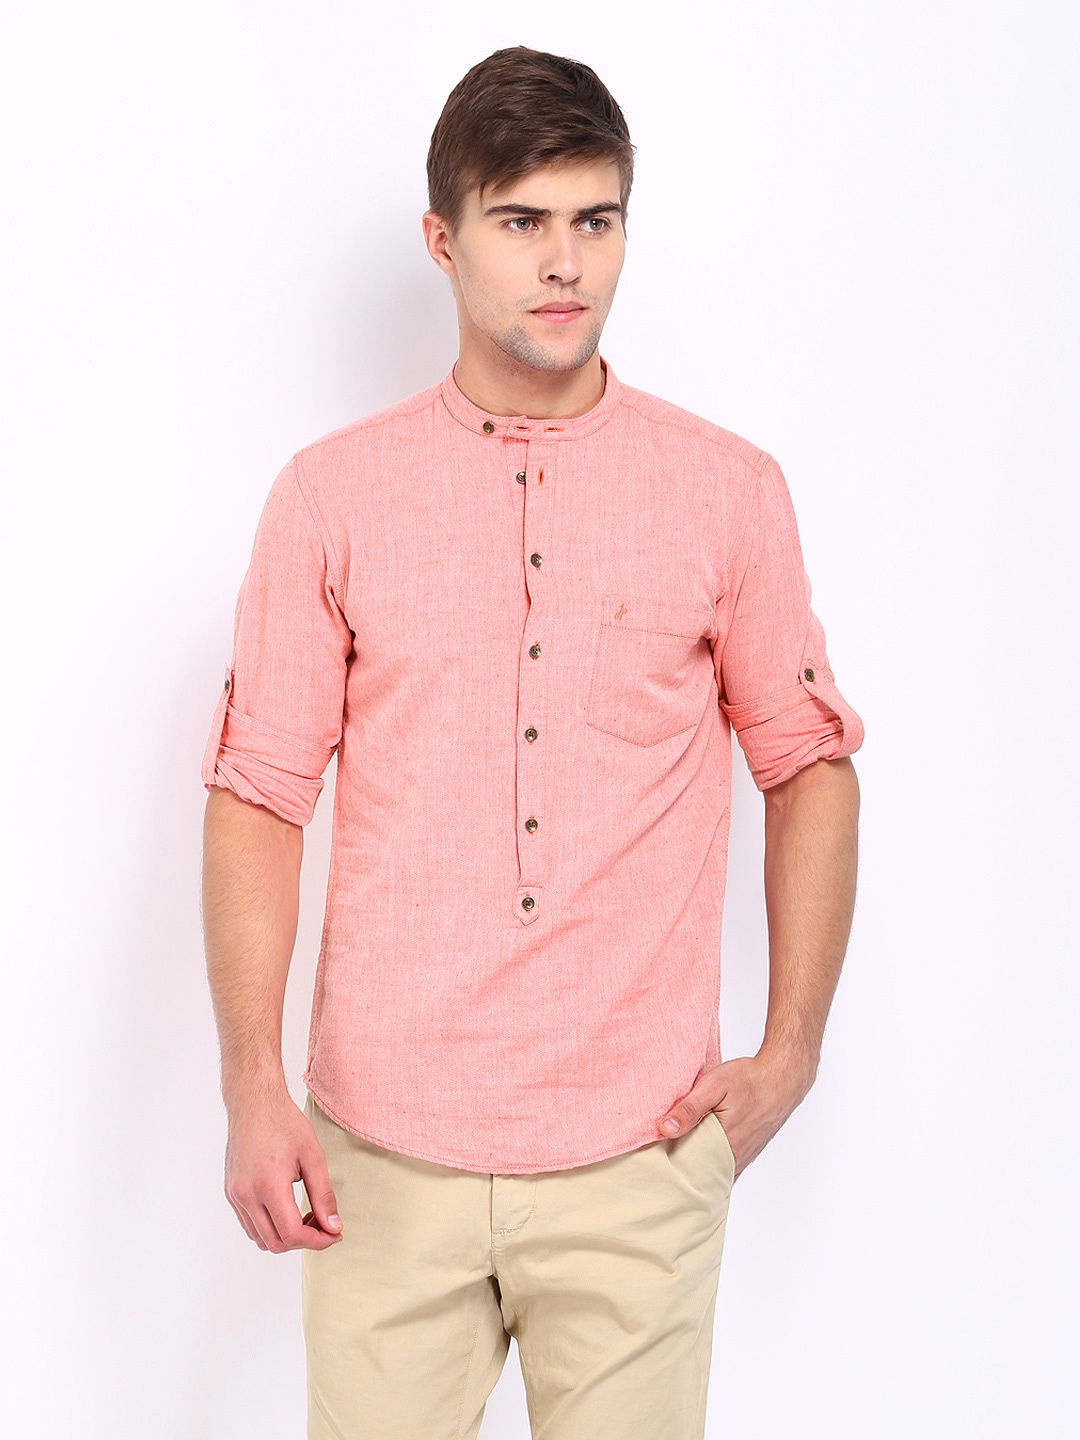 Peach Mens Shirt | Is Shirt